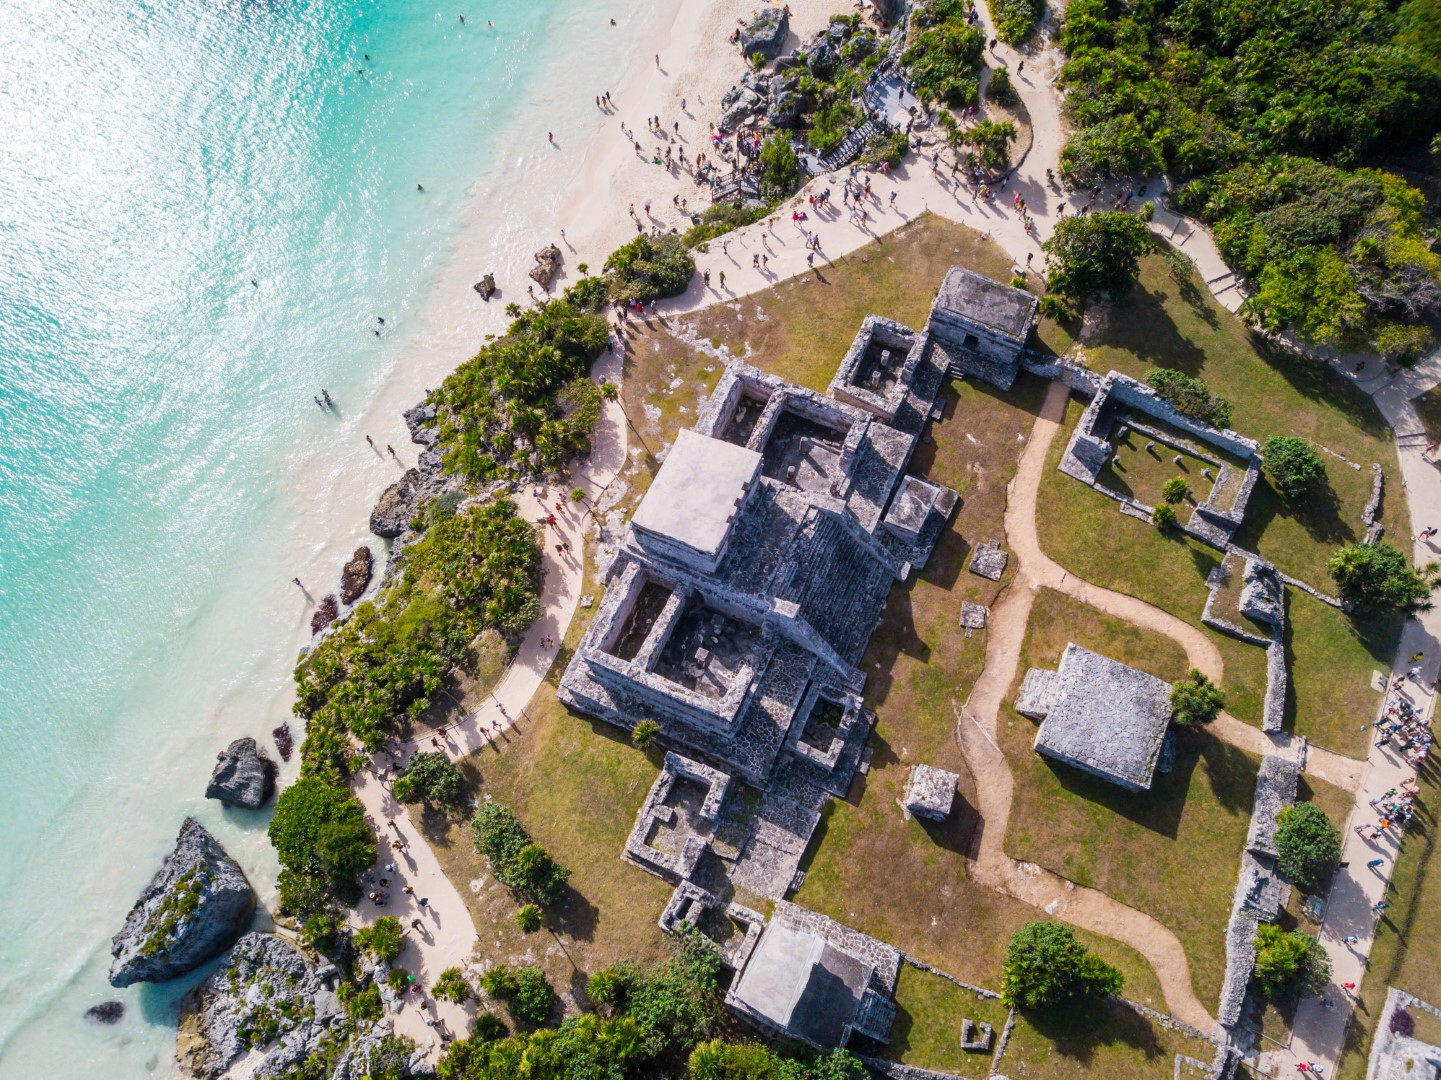 The ruins of Tulum from above